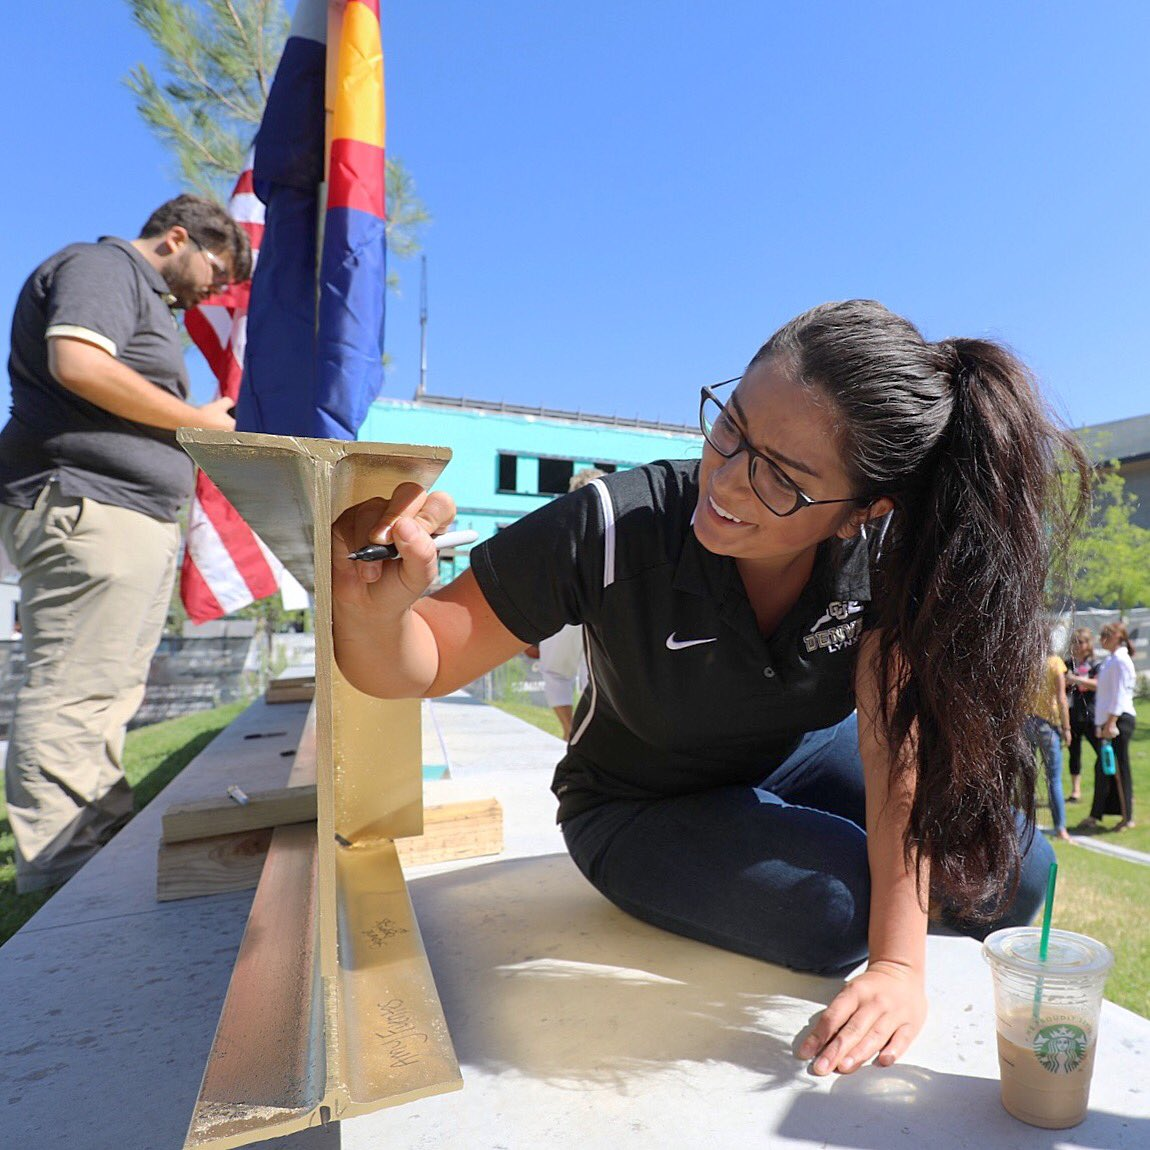 .@CUDenver student Jessica Rangel signs her name on the final steel beam of the CU Denver Wellness Center. #CUintheCity @DowntownDenver https://t.co/1k4XT4oYdL